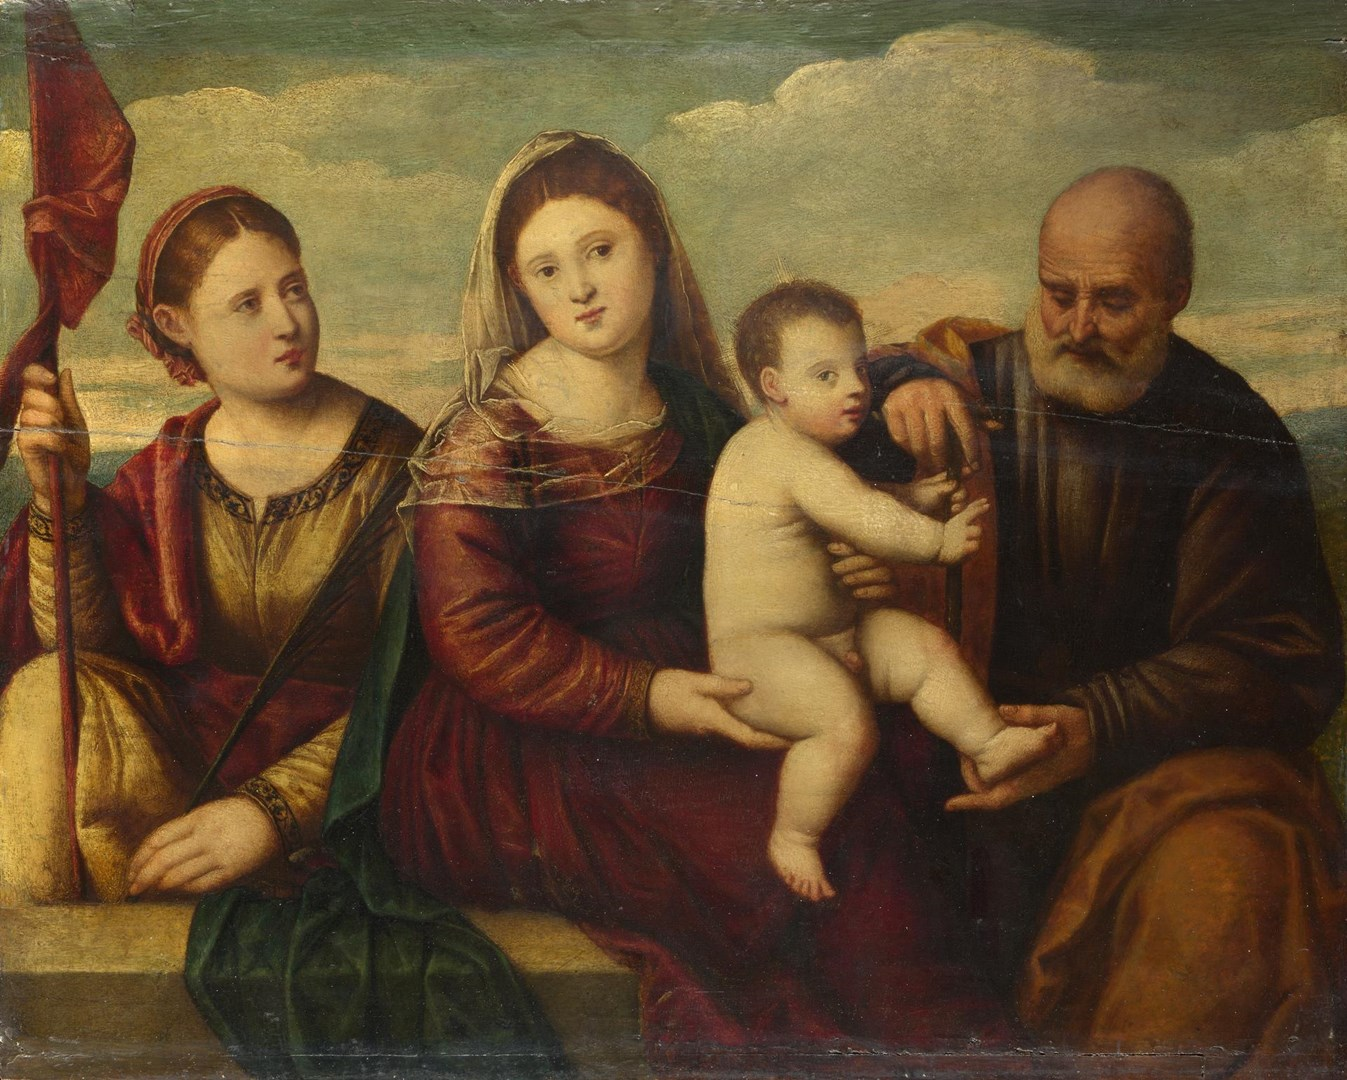 The Madonna and Child with Saints by Bernardino Licinio